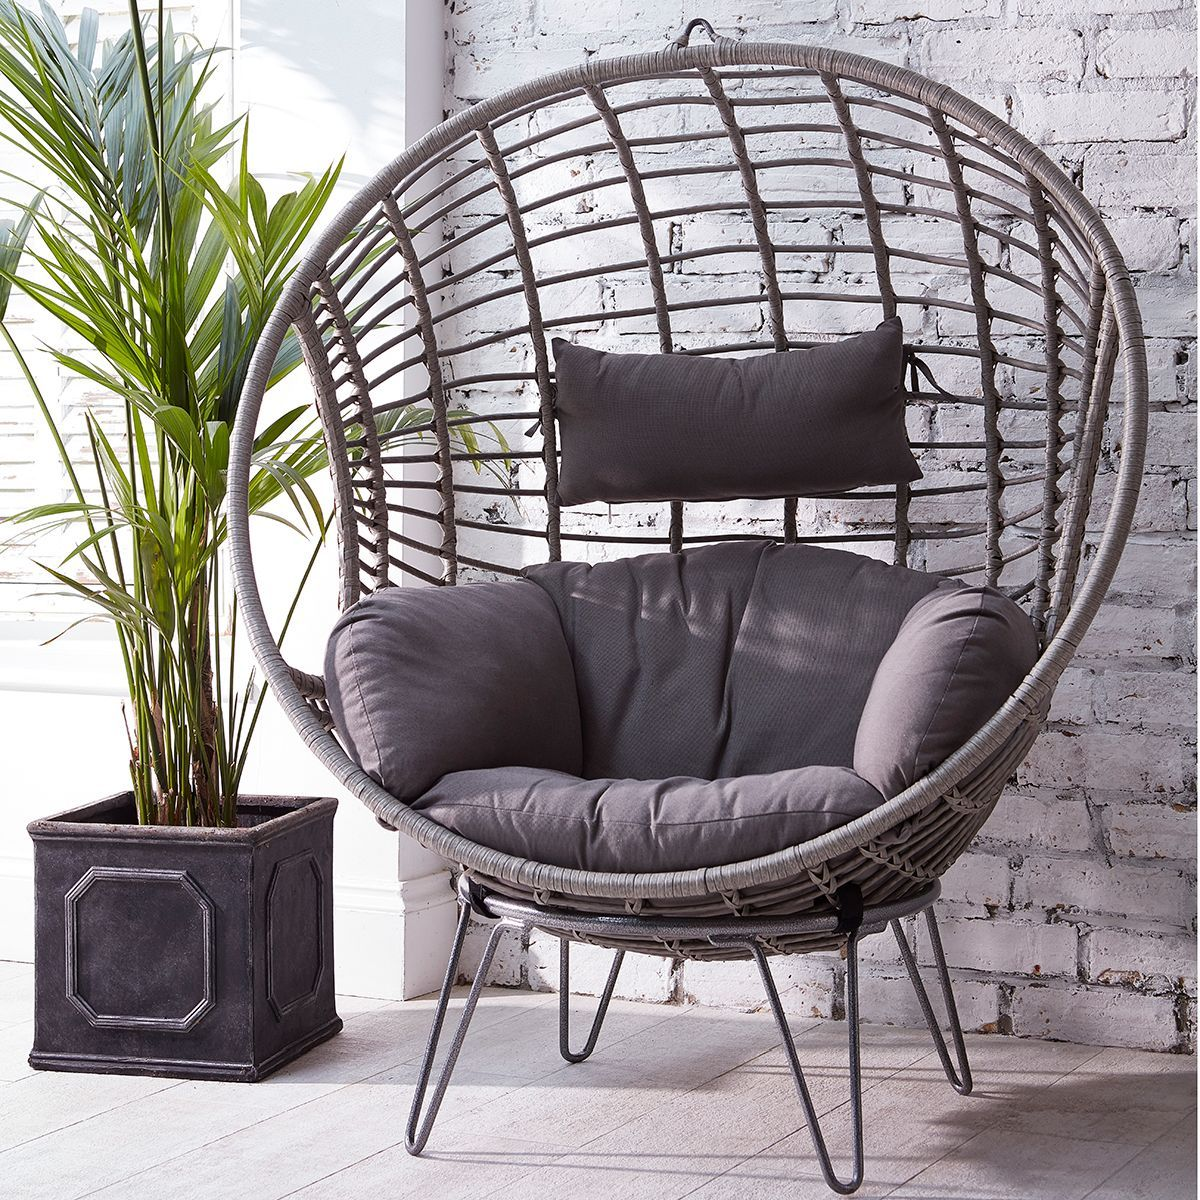 Notcutts Asolo Grey Wicker Chair  Notcutts  Notcutts  Wicker